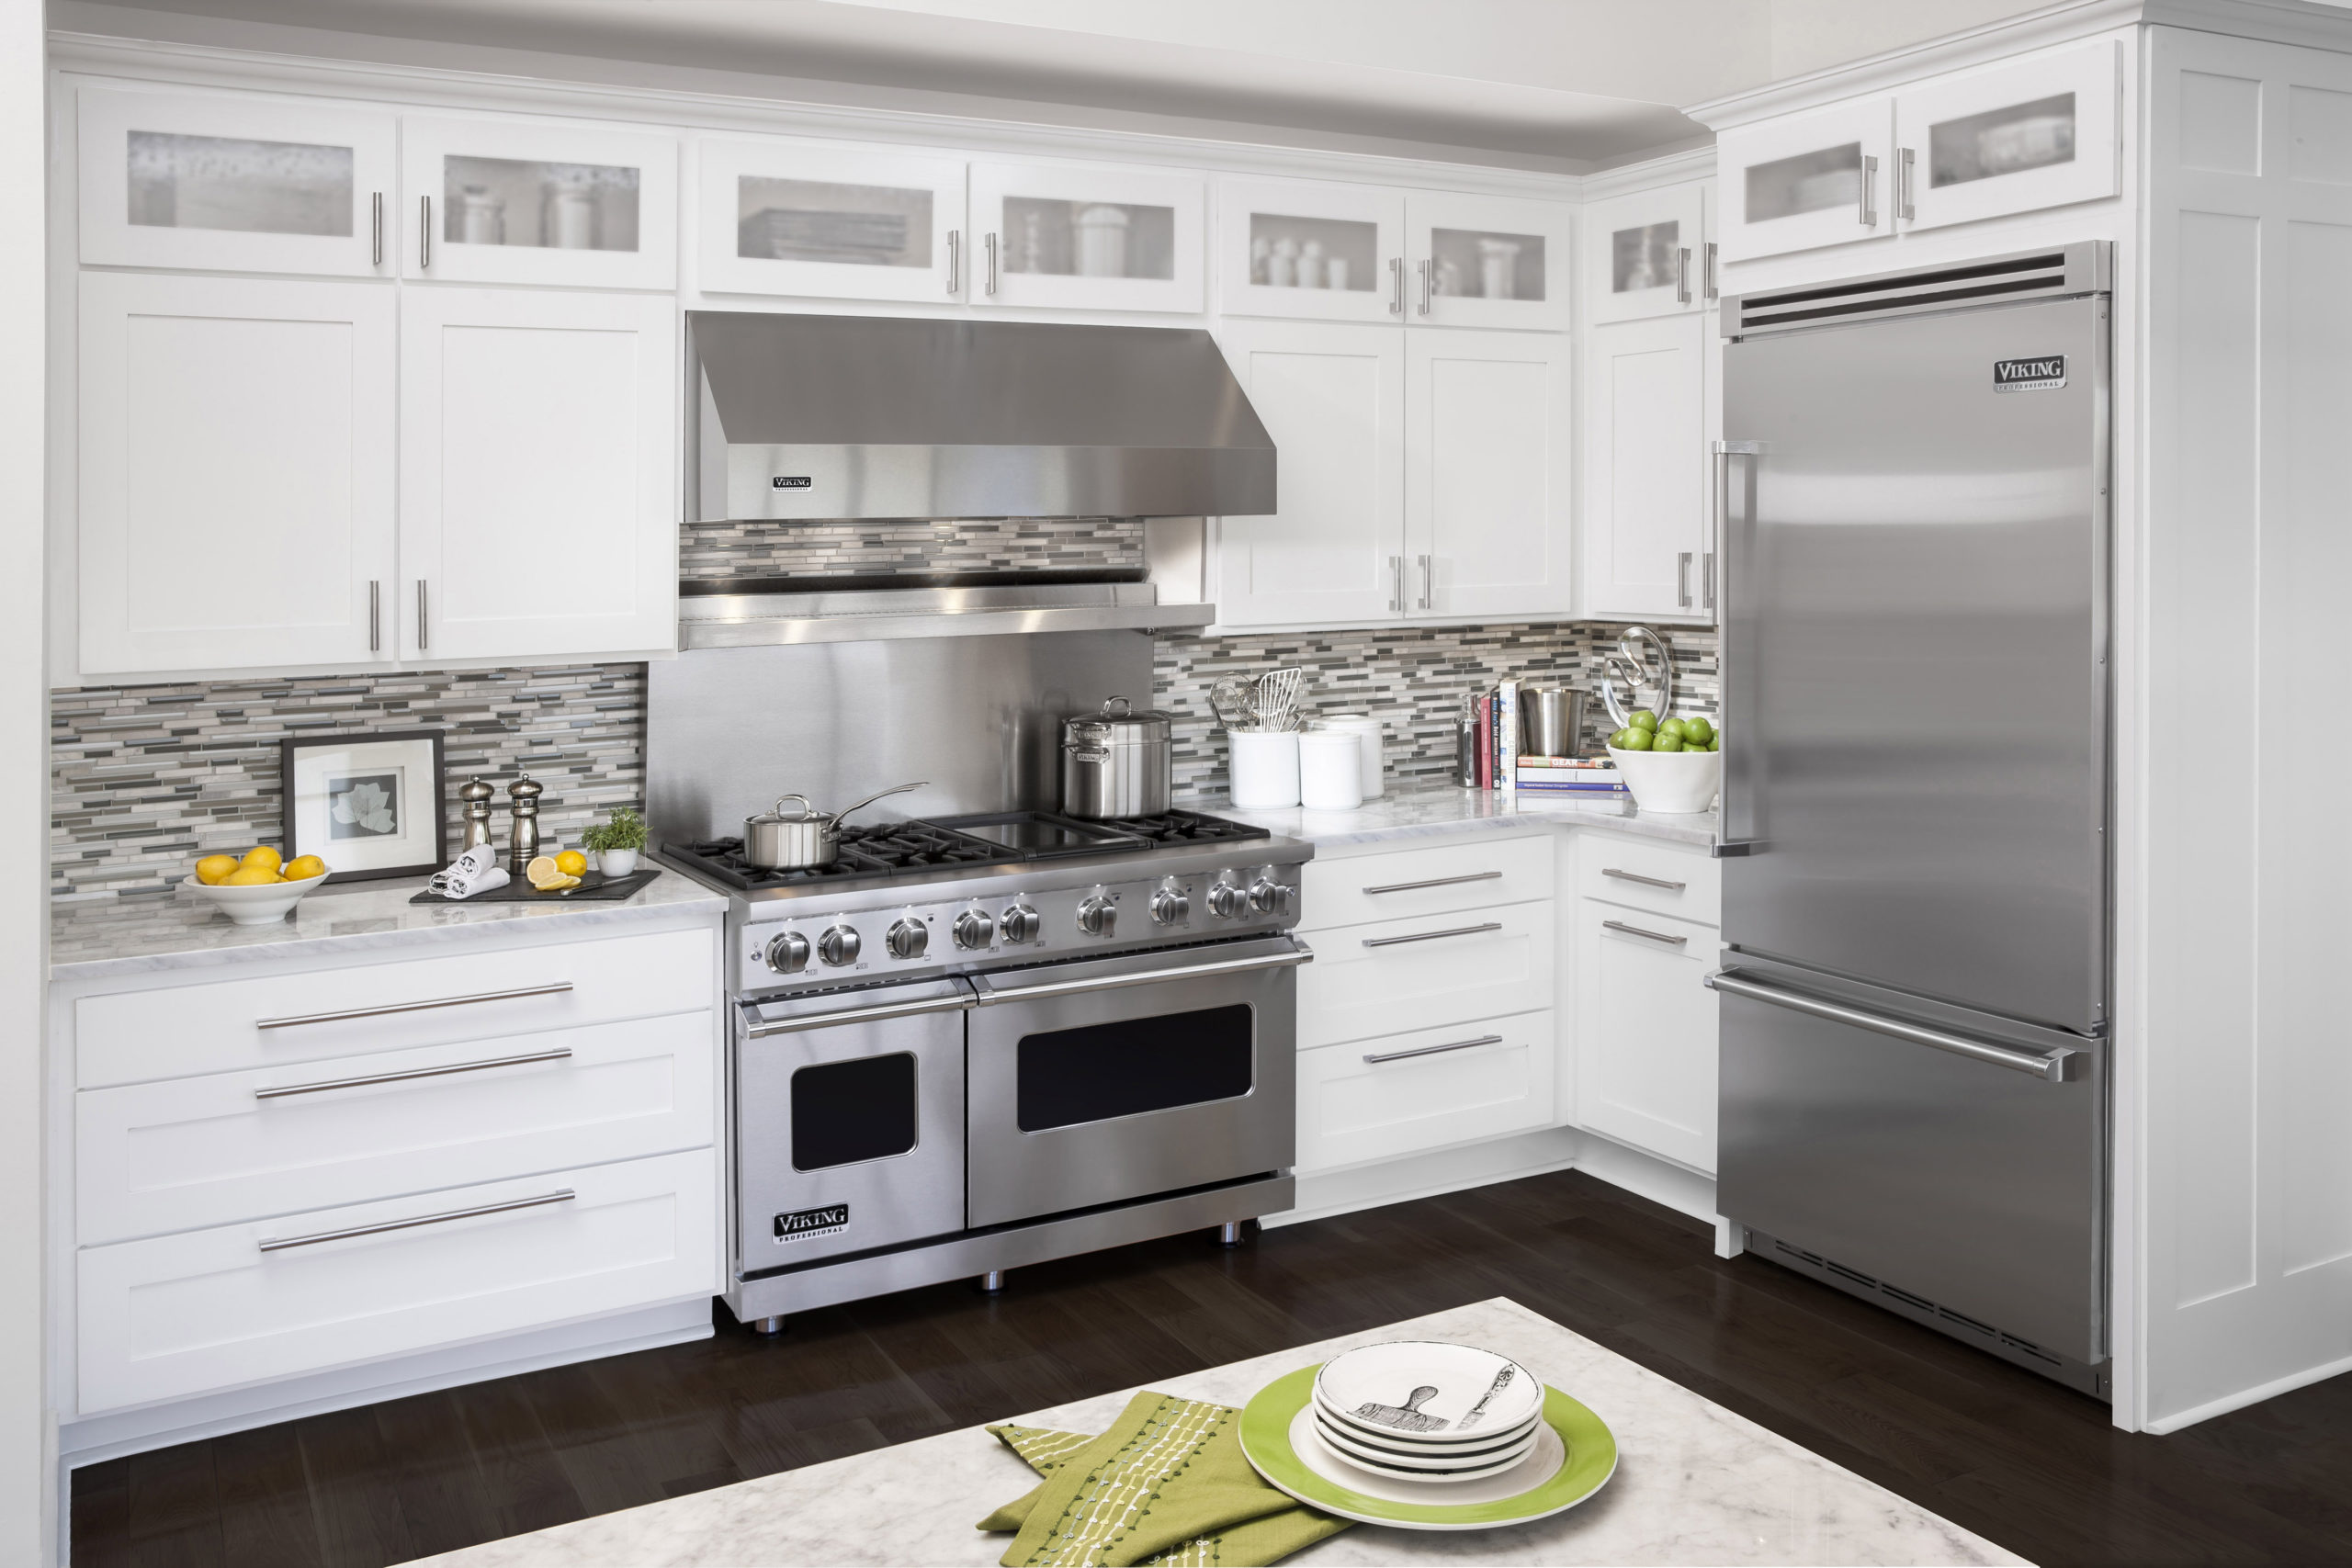 Viking Range Llc To Make Company History With The Debut Of New Products At Kbis Show Kbis